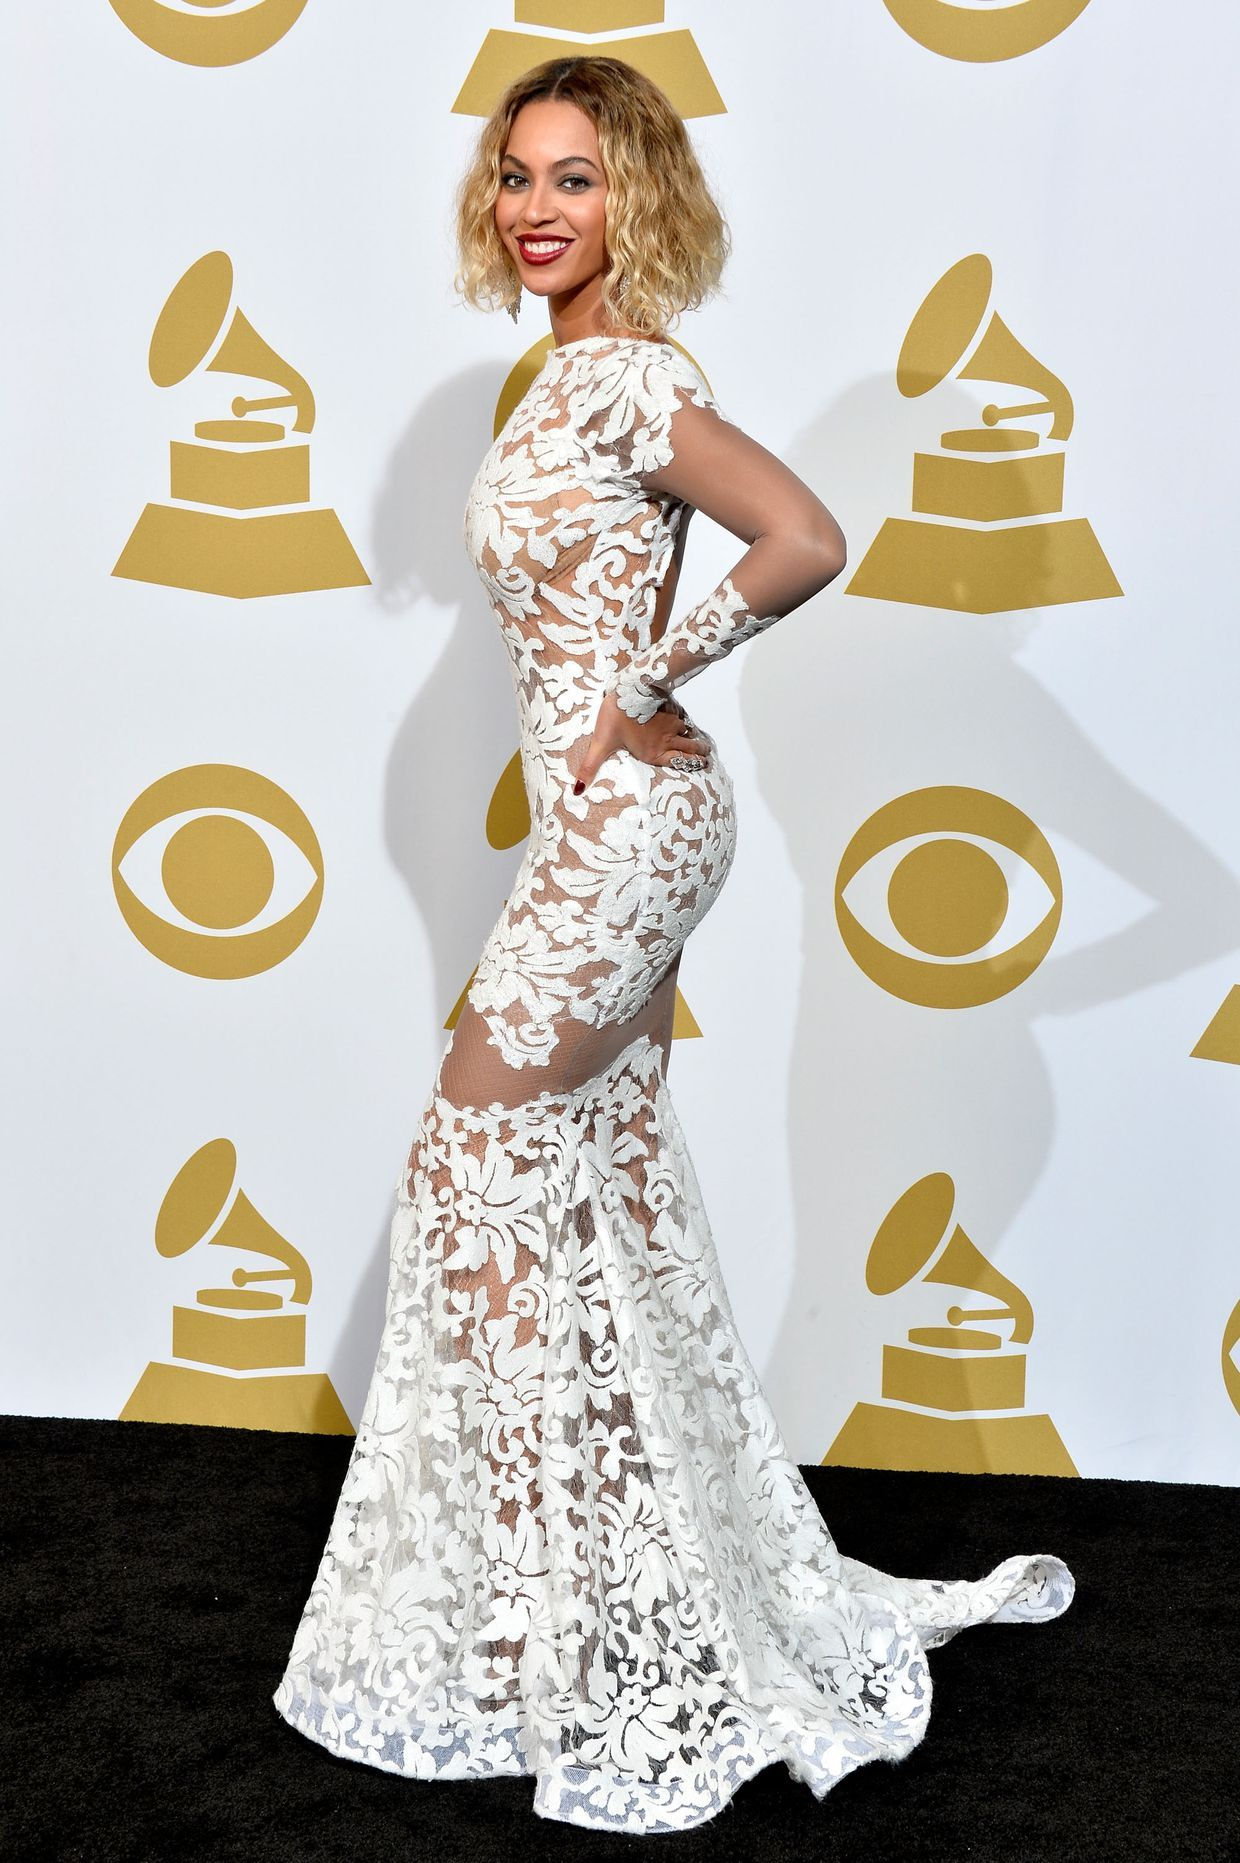 d43822fc5cdf Beautiful Dress at the Grammys worn by Beyonce (Theyallhateus.com)   Style    Beyonce knowles, Beyonce, Fashion